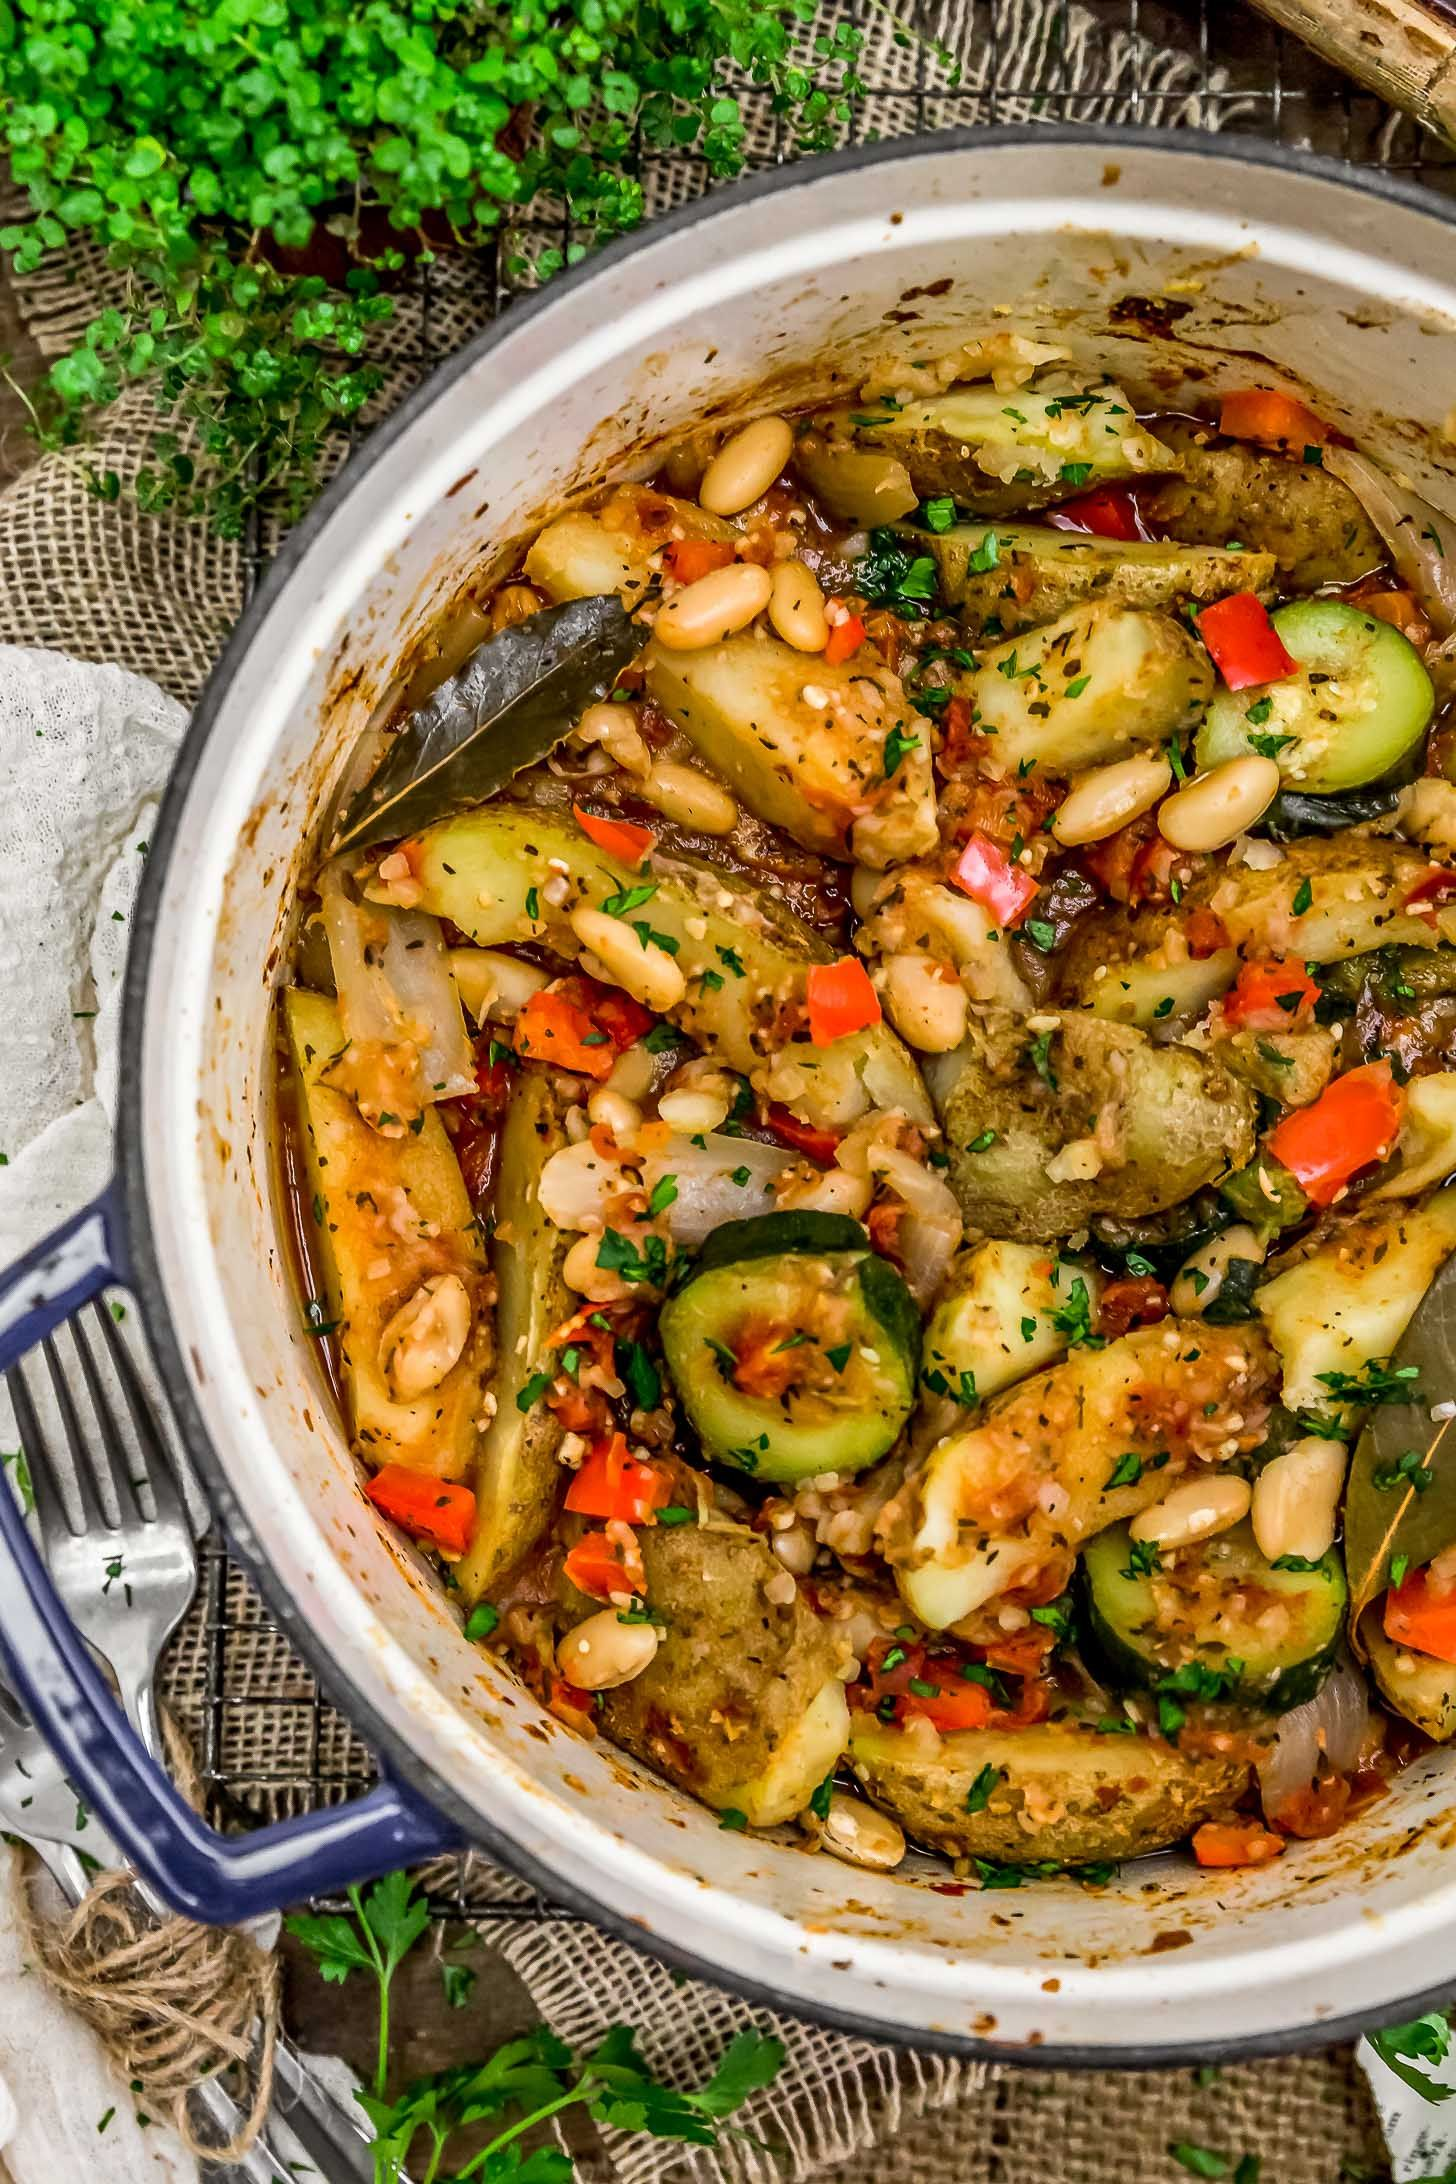 Rustic Italian Vegetable Bake Monkey And Me Kitchen Adventures Recipe In 2020 Baked Vegetables Italian Vegetables Vegetable Recipes